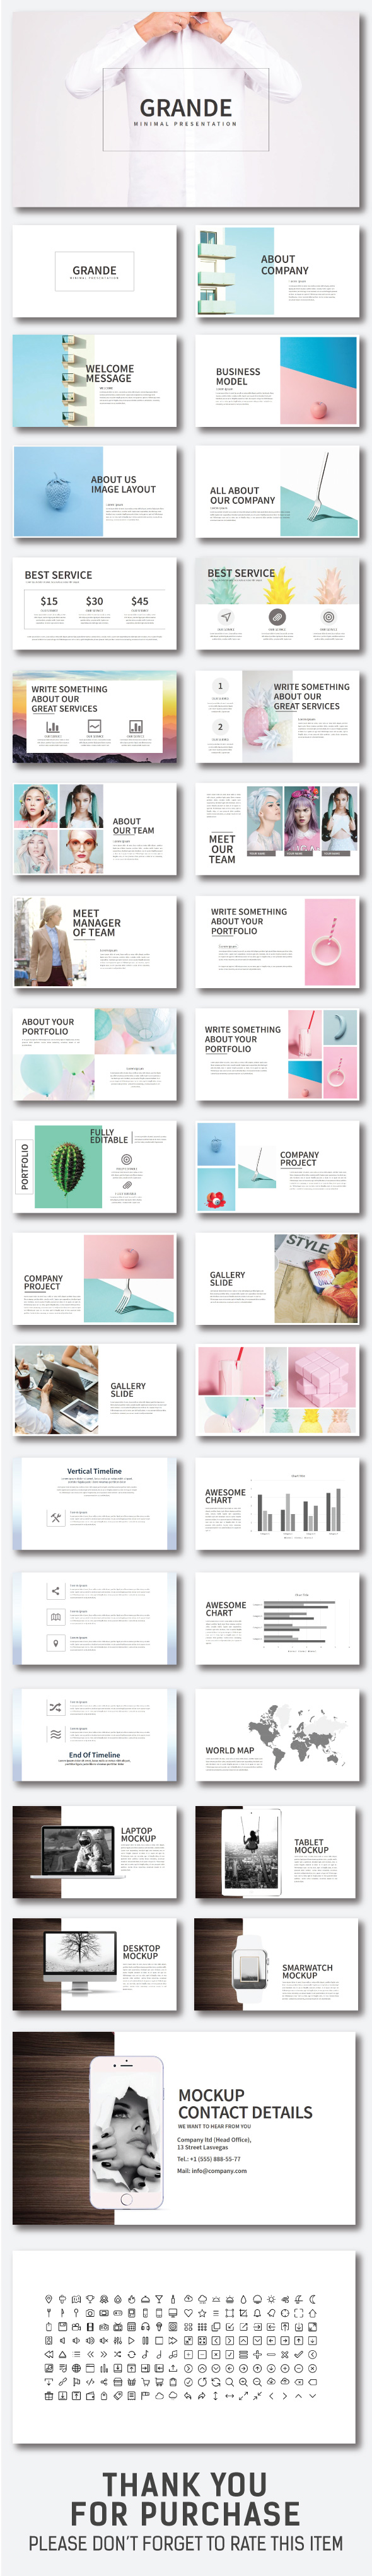 GraphicRiver Grande Powerpoint Template 20658088